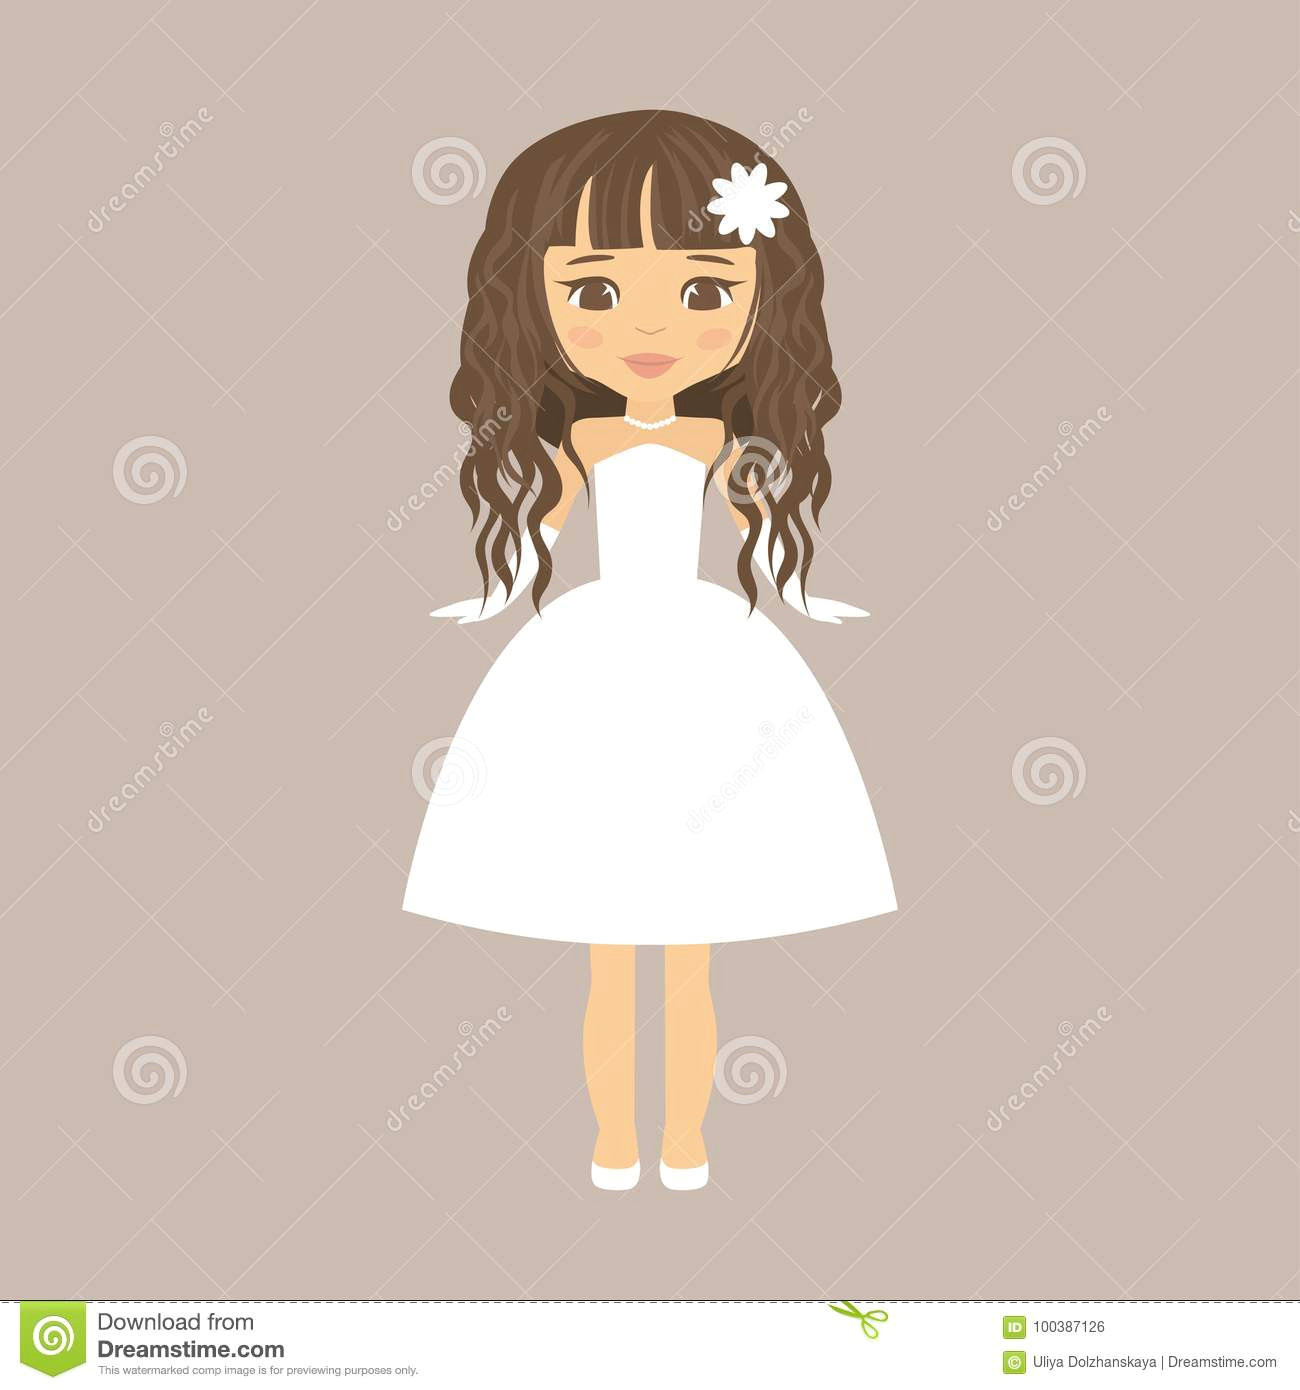 cartoon girl curly hair stock illustrations 2 489 cartoon girl curly hair stock illustrations vectors clipart dreamstime